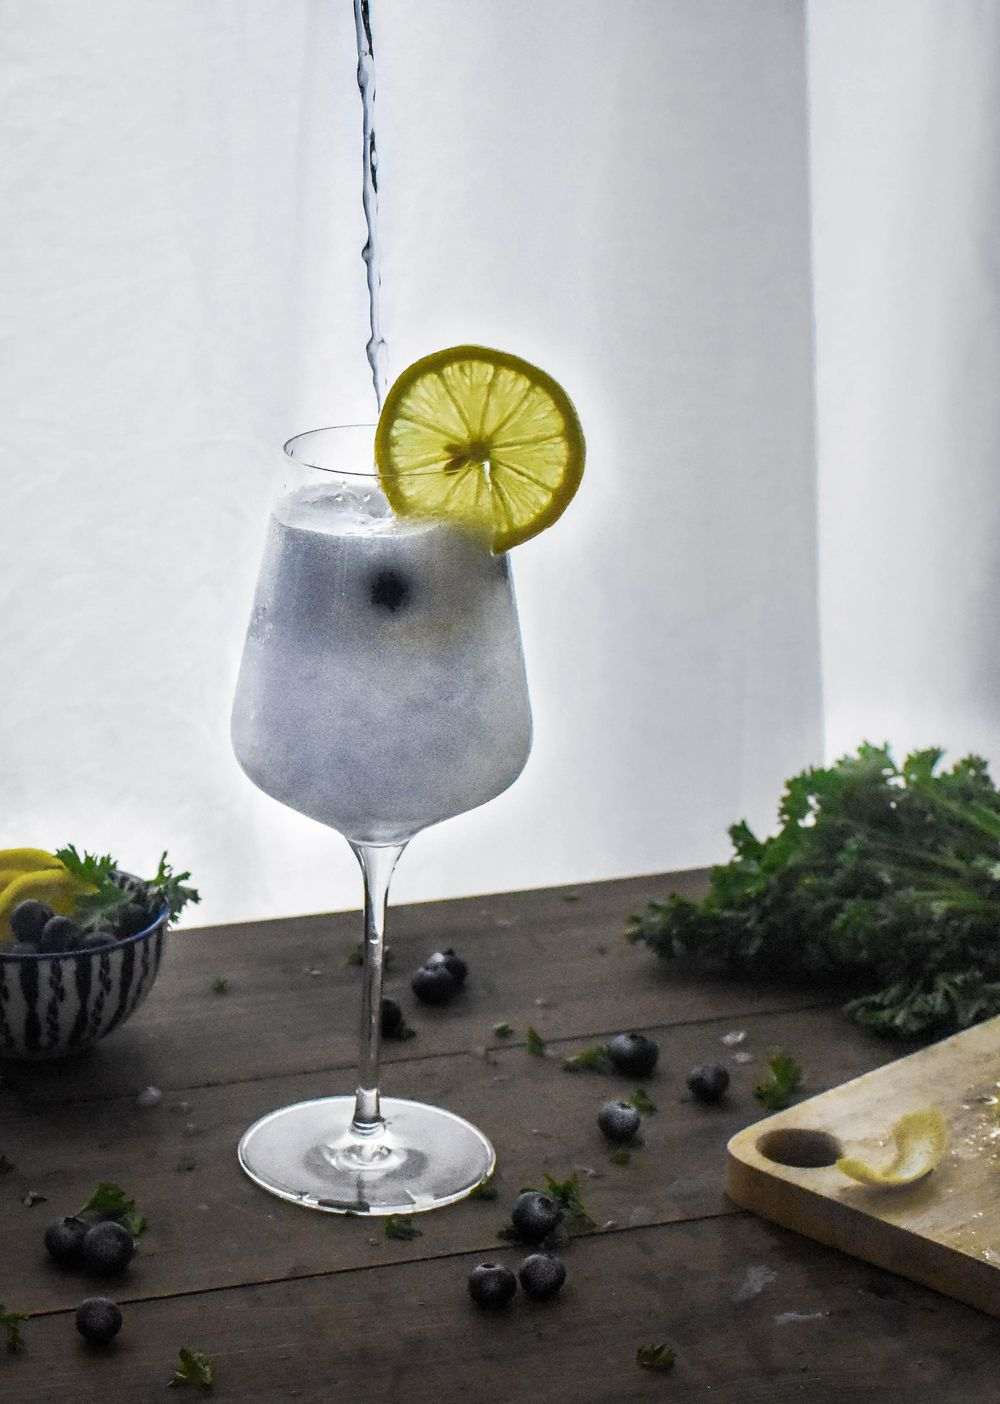 Cocktail - image 1 - student project